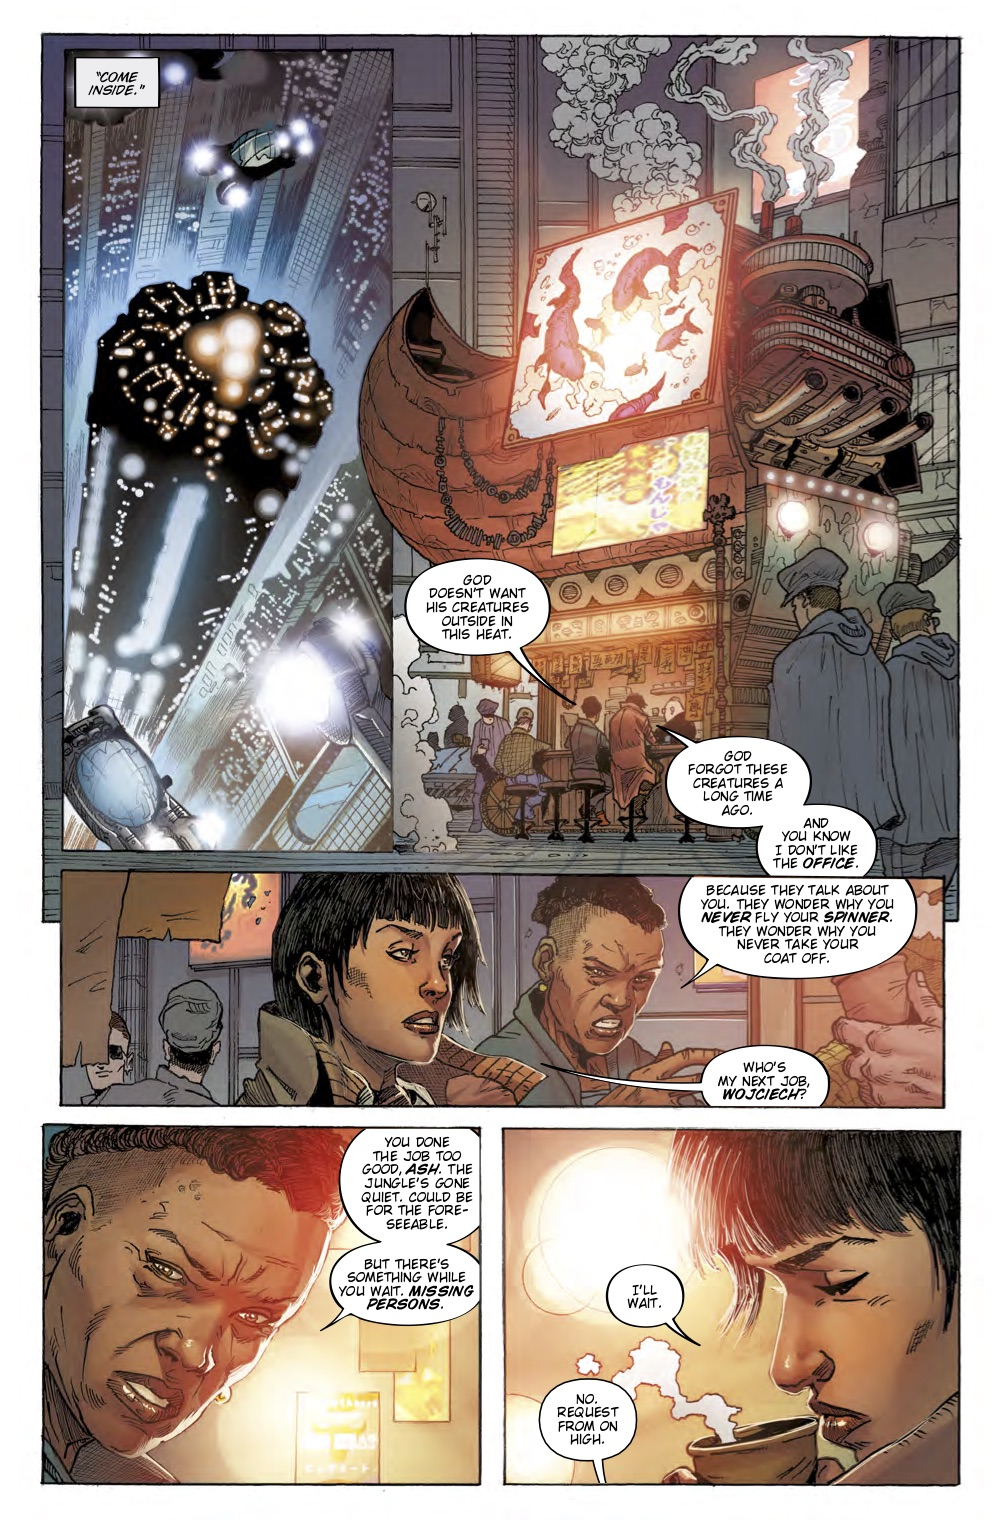 Ash talks to her boss Wojciech In Blade Runner 2019 #1.